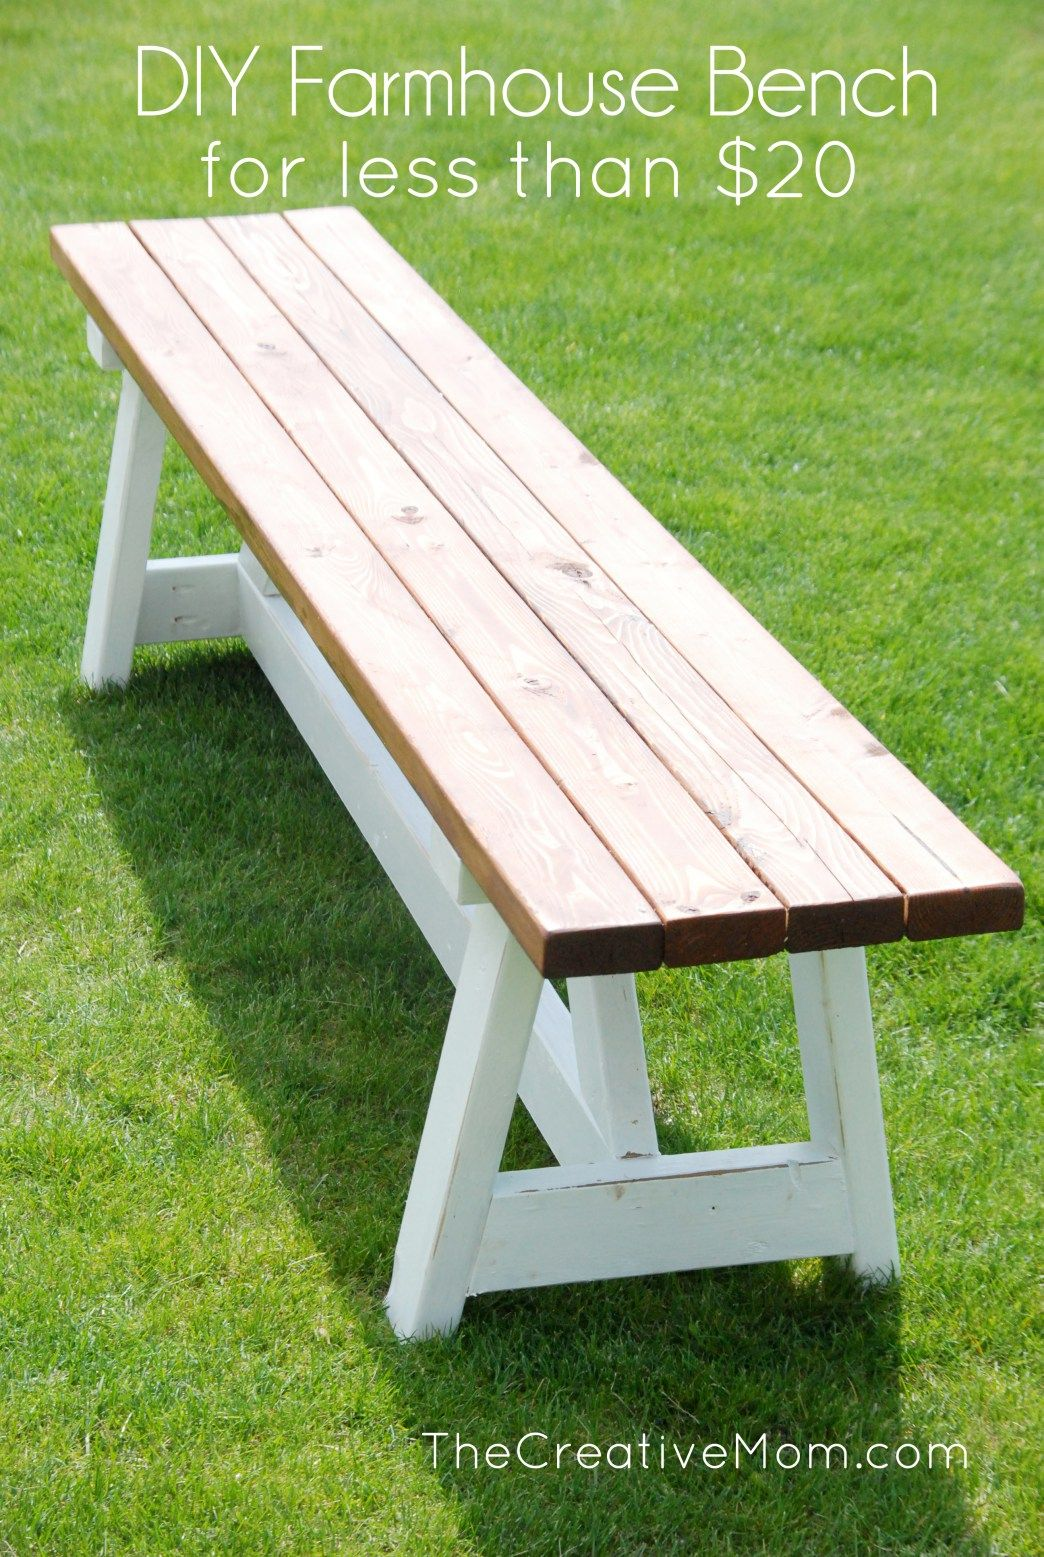 Info's : How to Build a Farmhouse Bench (for under ) - The Creative Mom